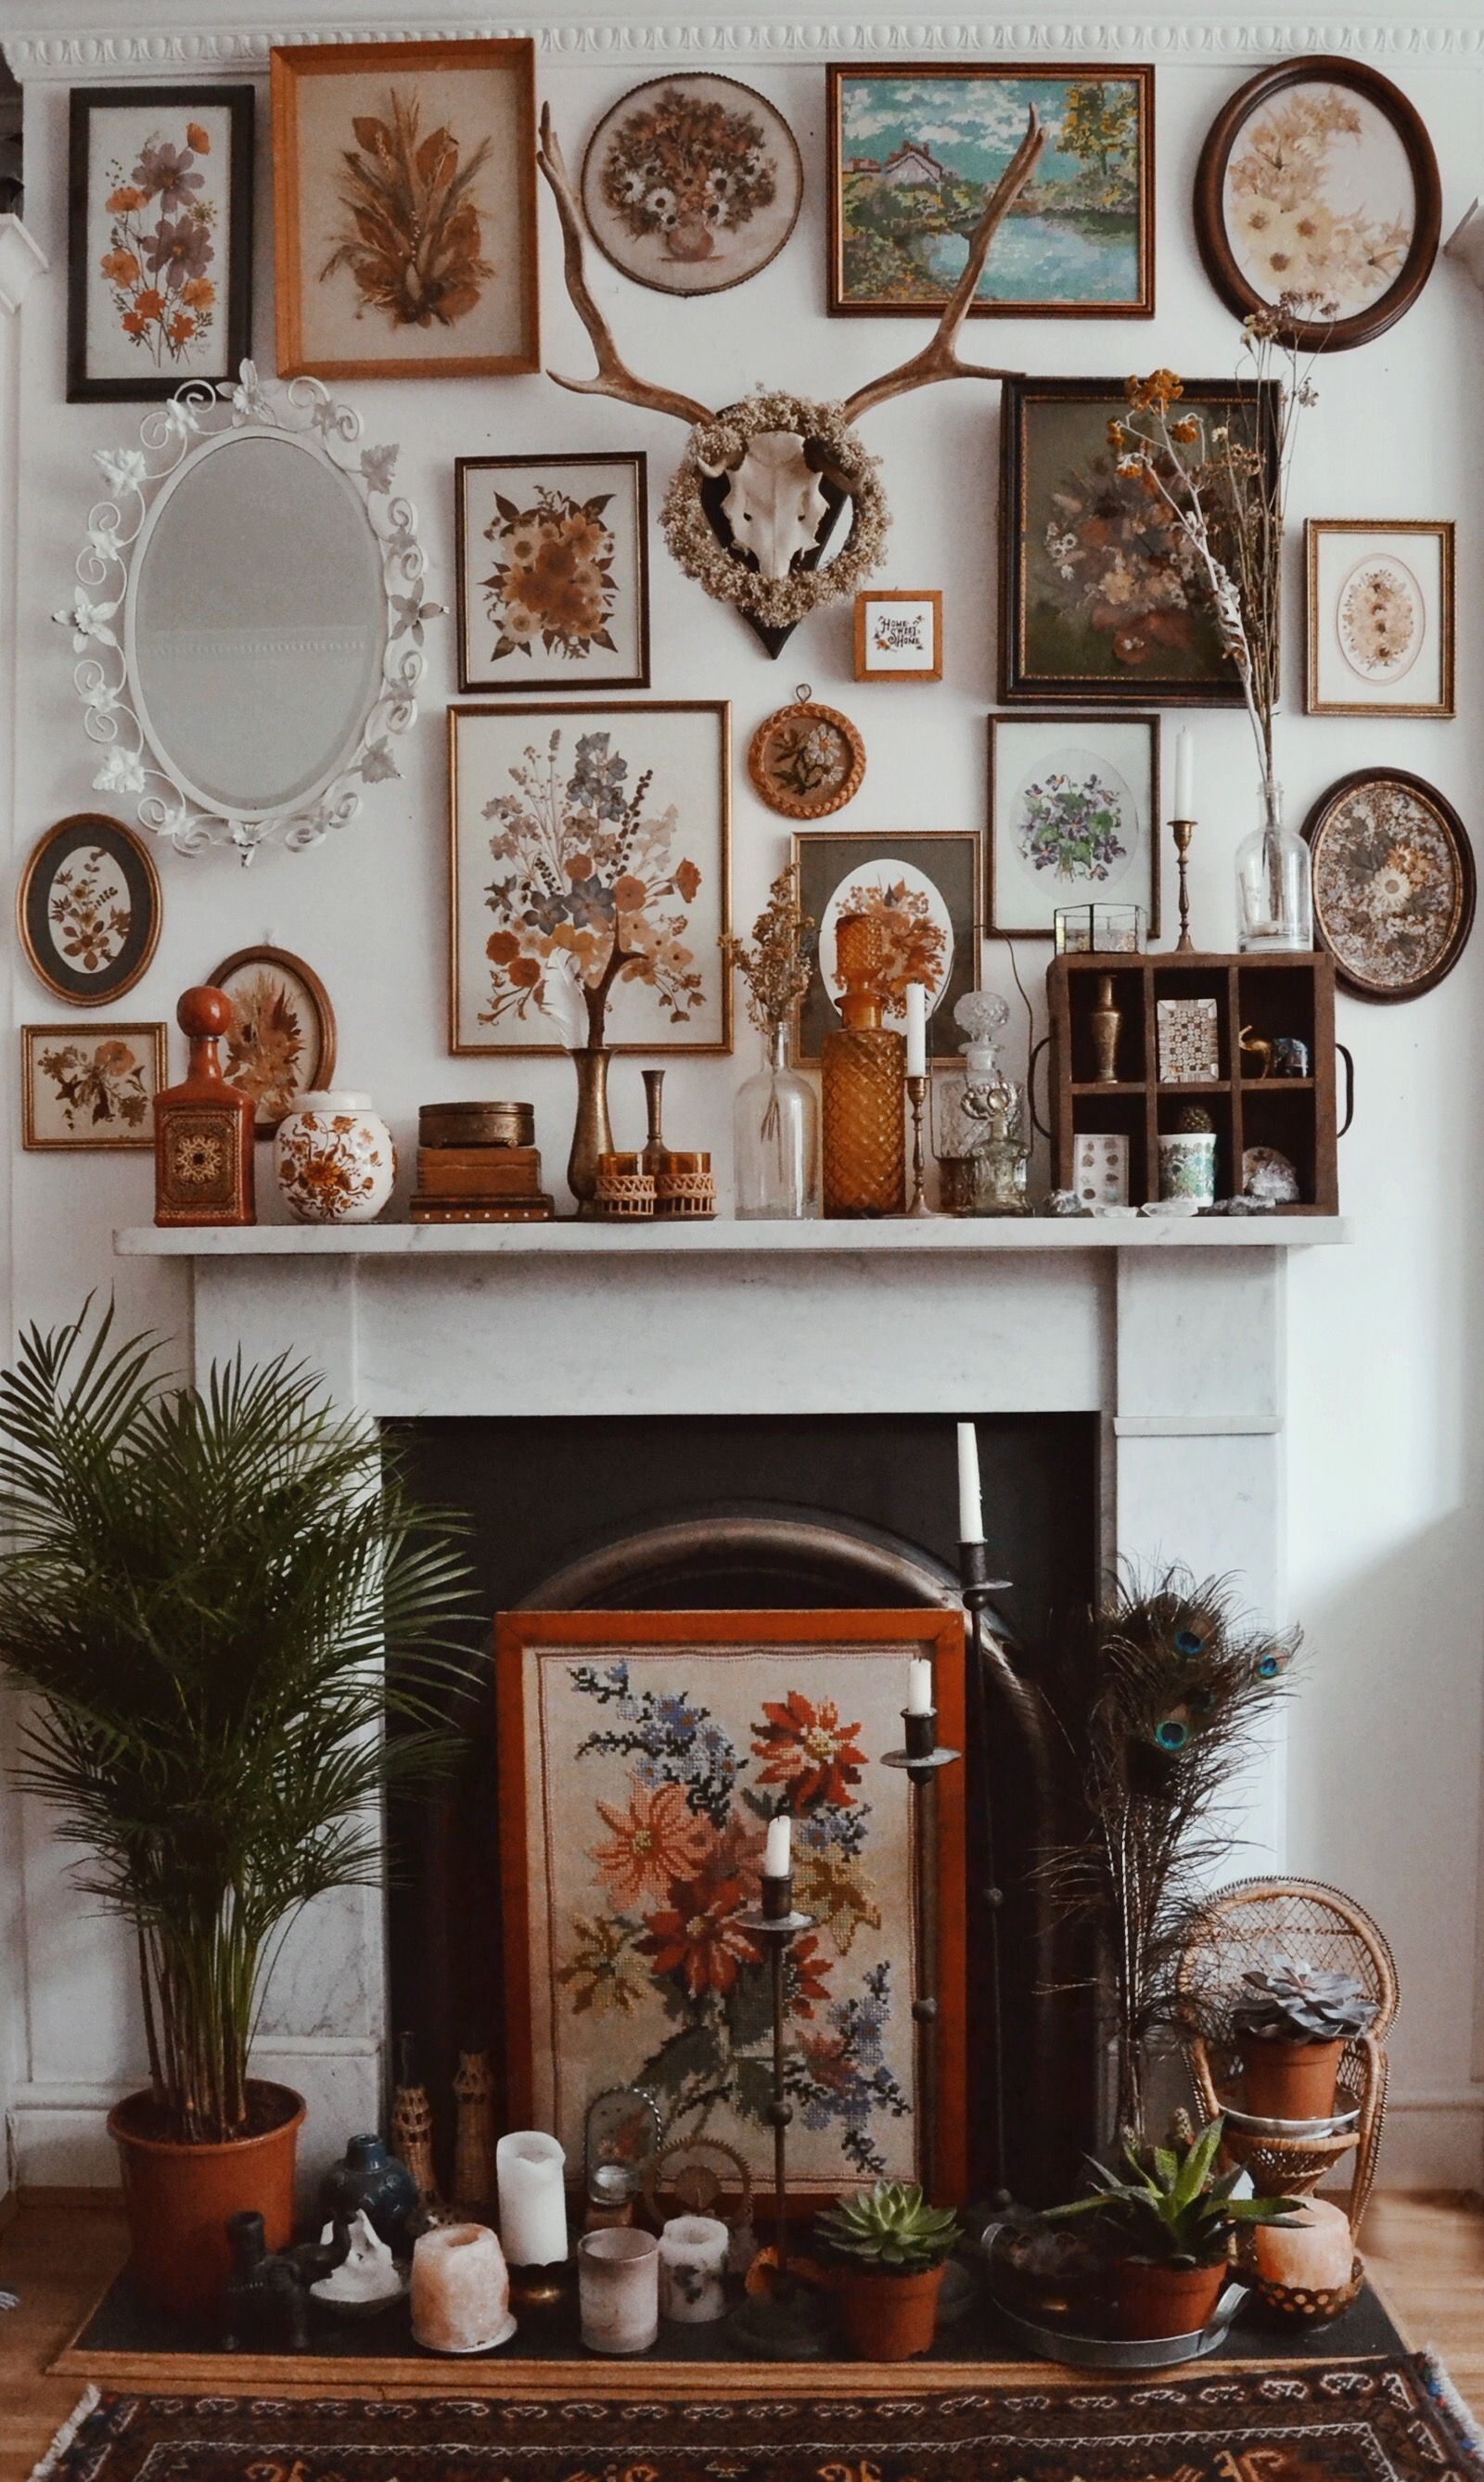 Best 25 Eclectic Frames Ideas On Pinterest Wall Of Frames Frame Arrangements And Wall Frame